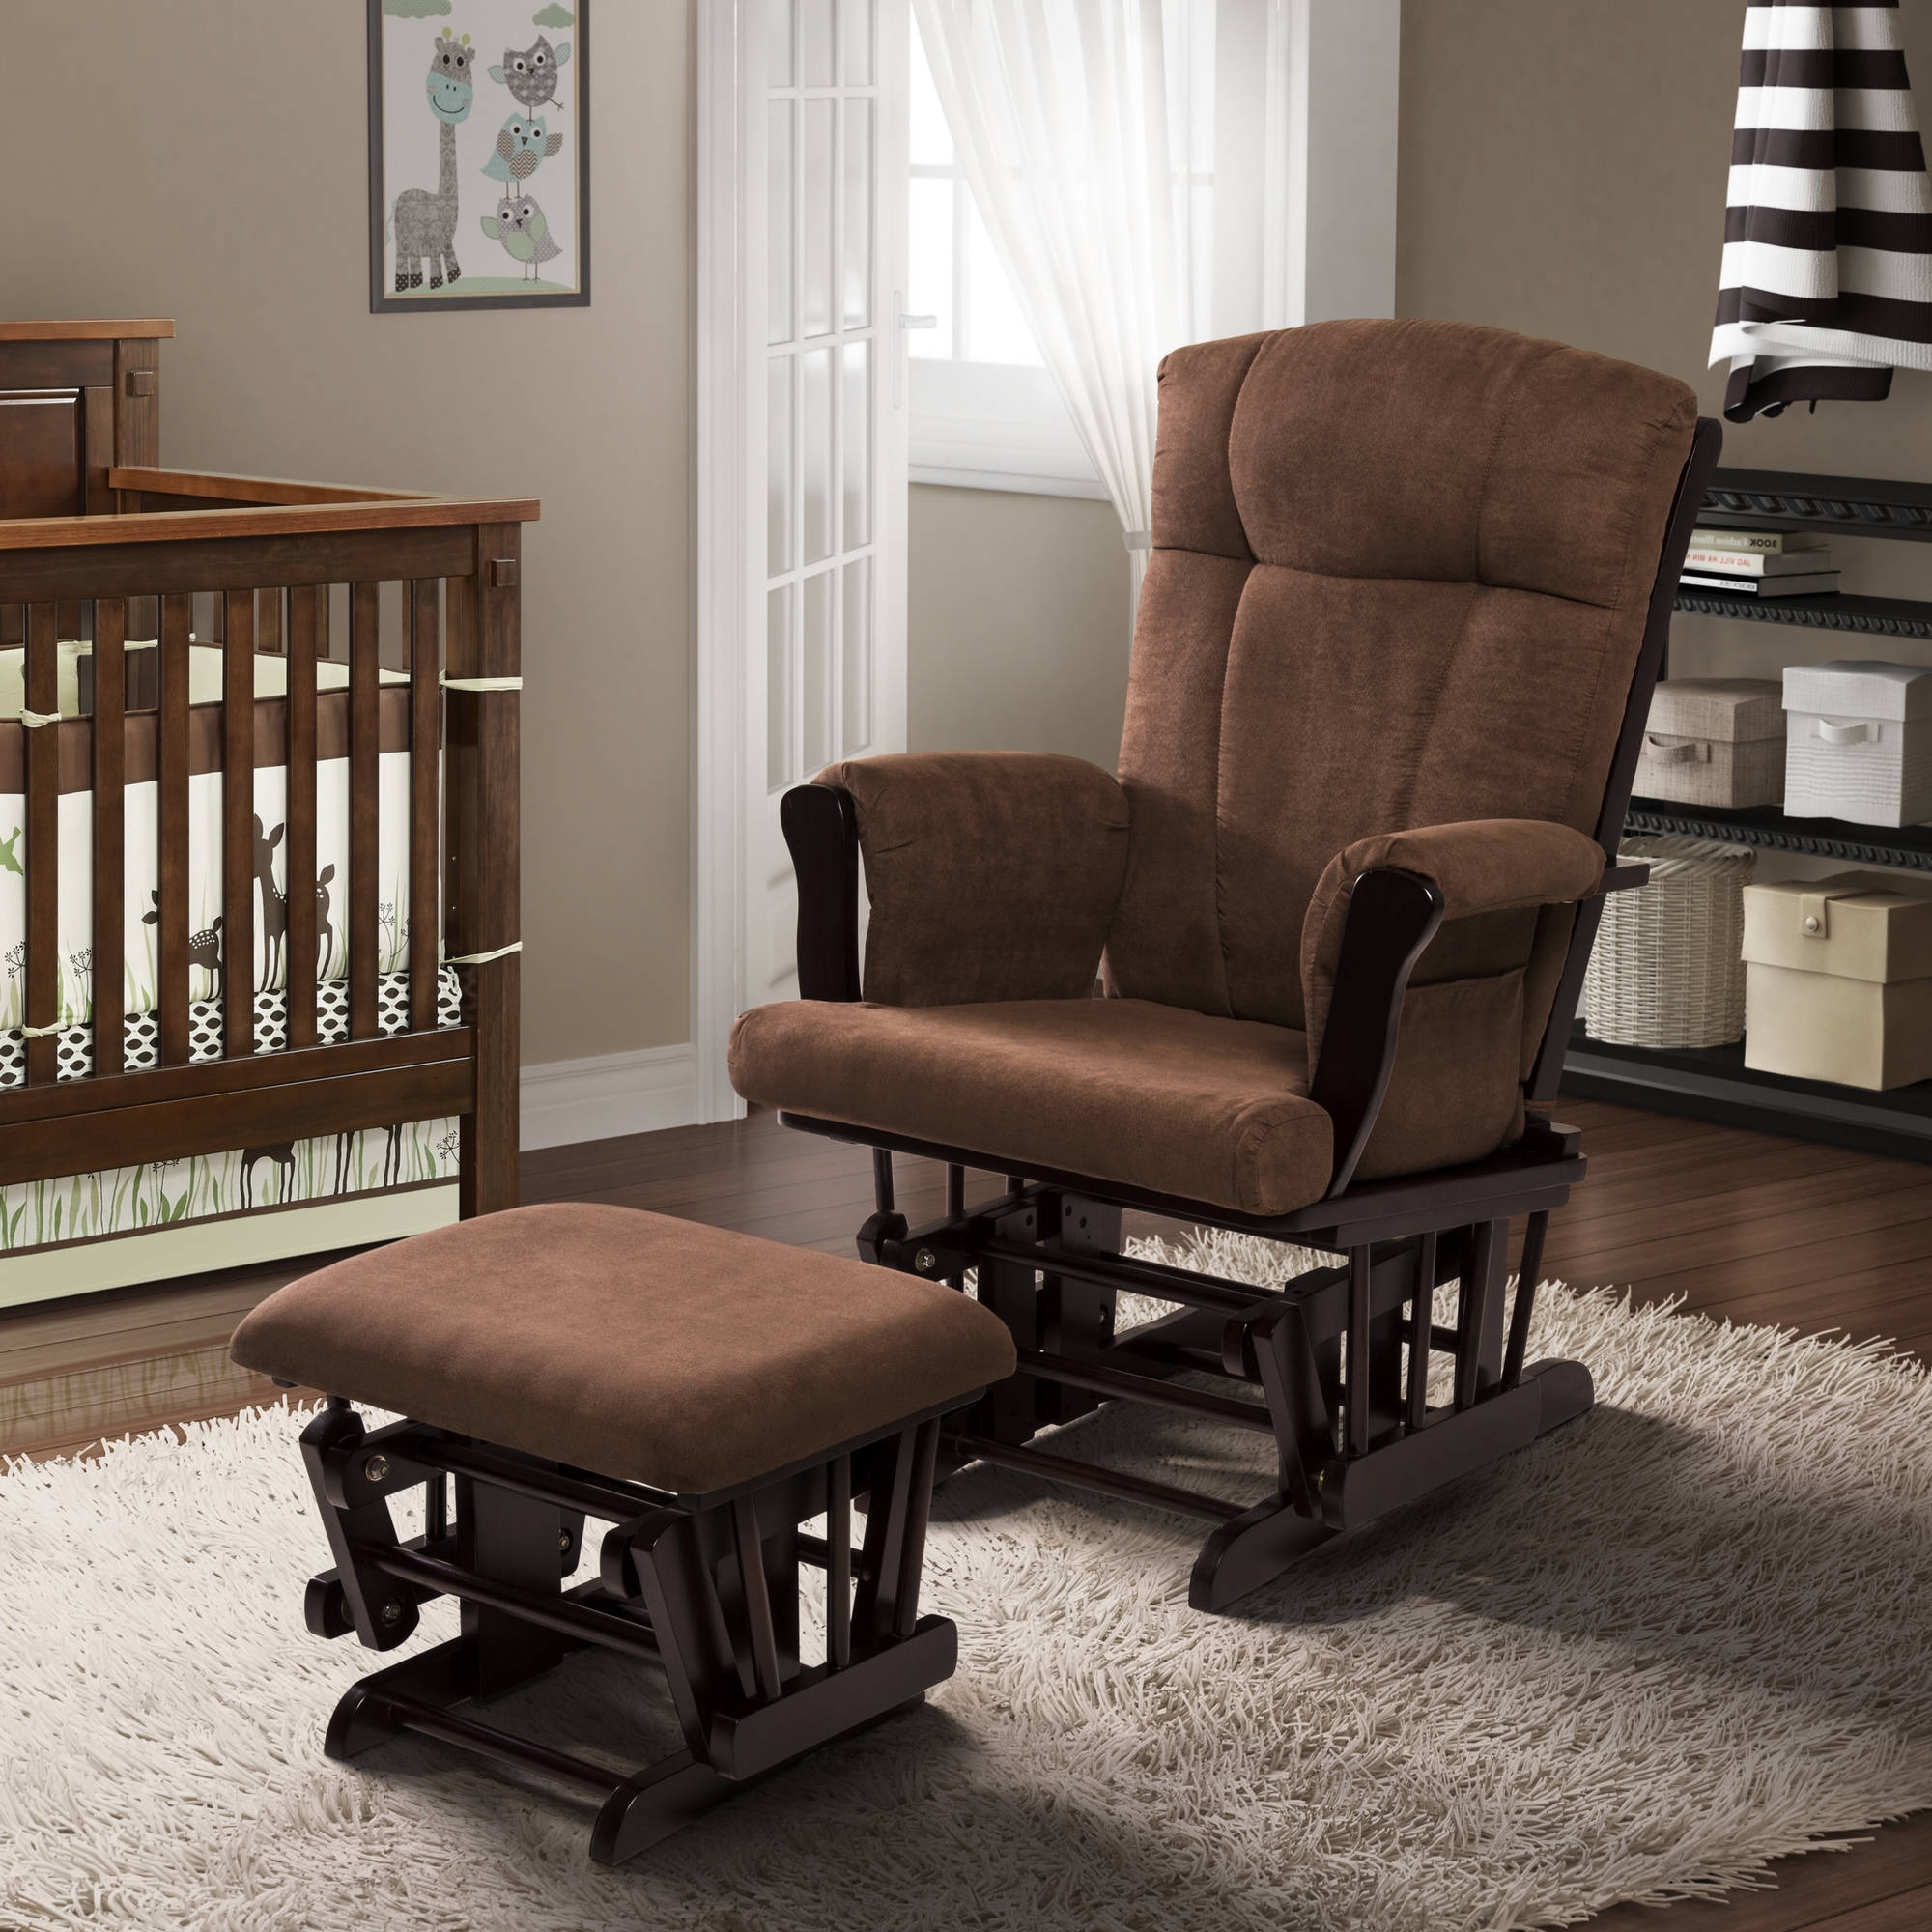 Popular Baby Relax Glider Rocker And Ottoman Espresso With Chocolate In Rocking Chairs At Walmart (View 13 of 20)